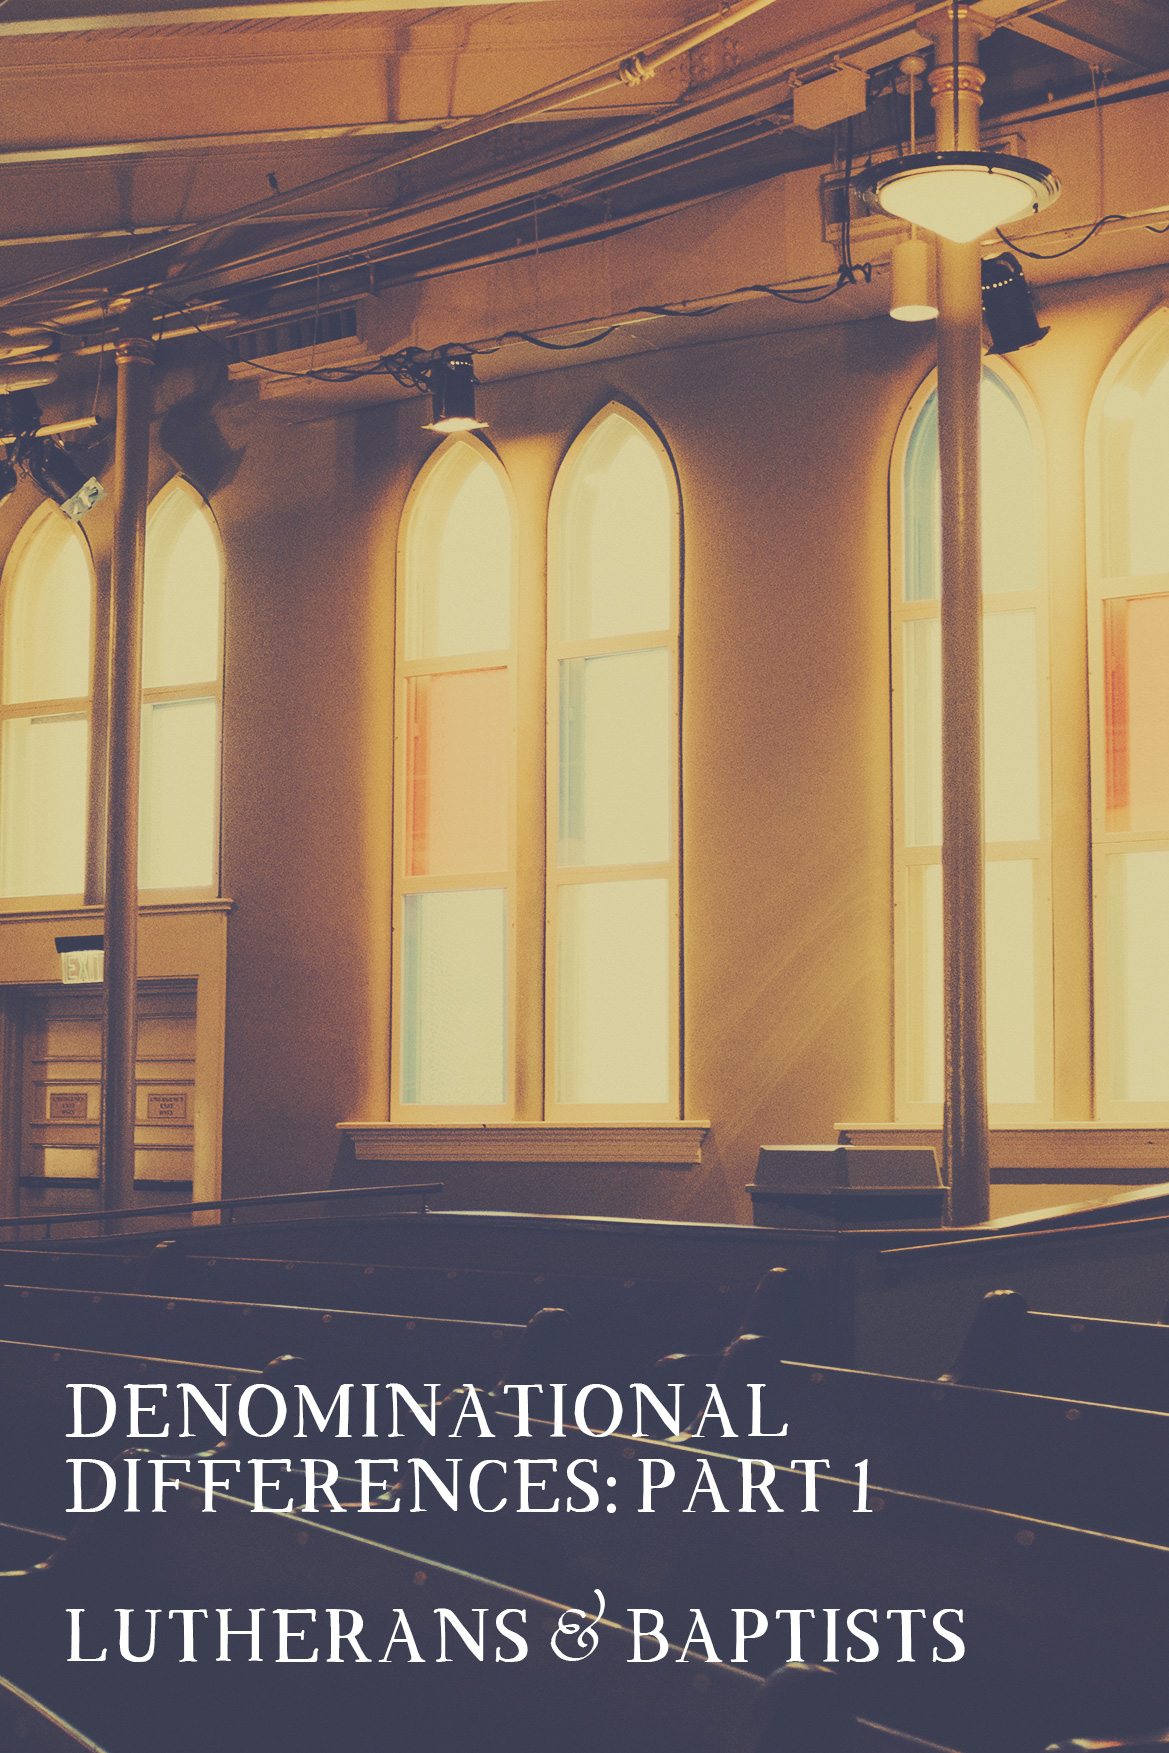 DENOMINATIONAL DIFFERENCES BETWEEN LUTHERANS AND BAPTISTS - New Identity Magazine